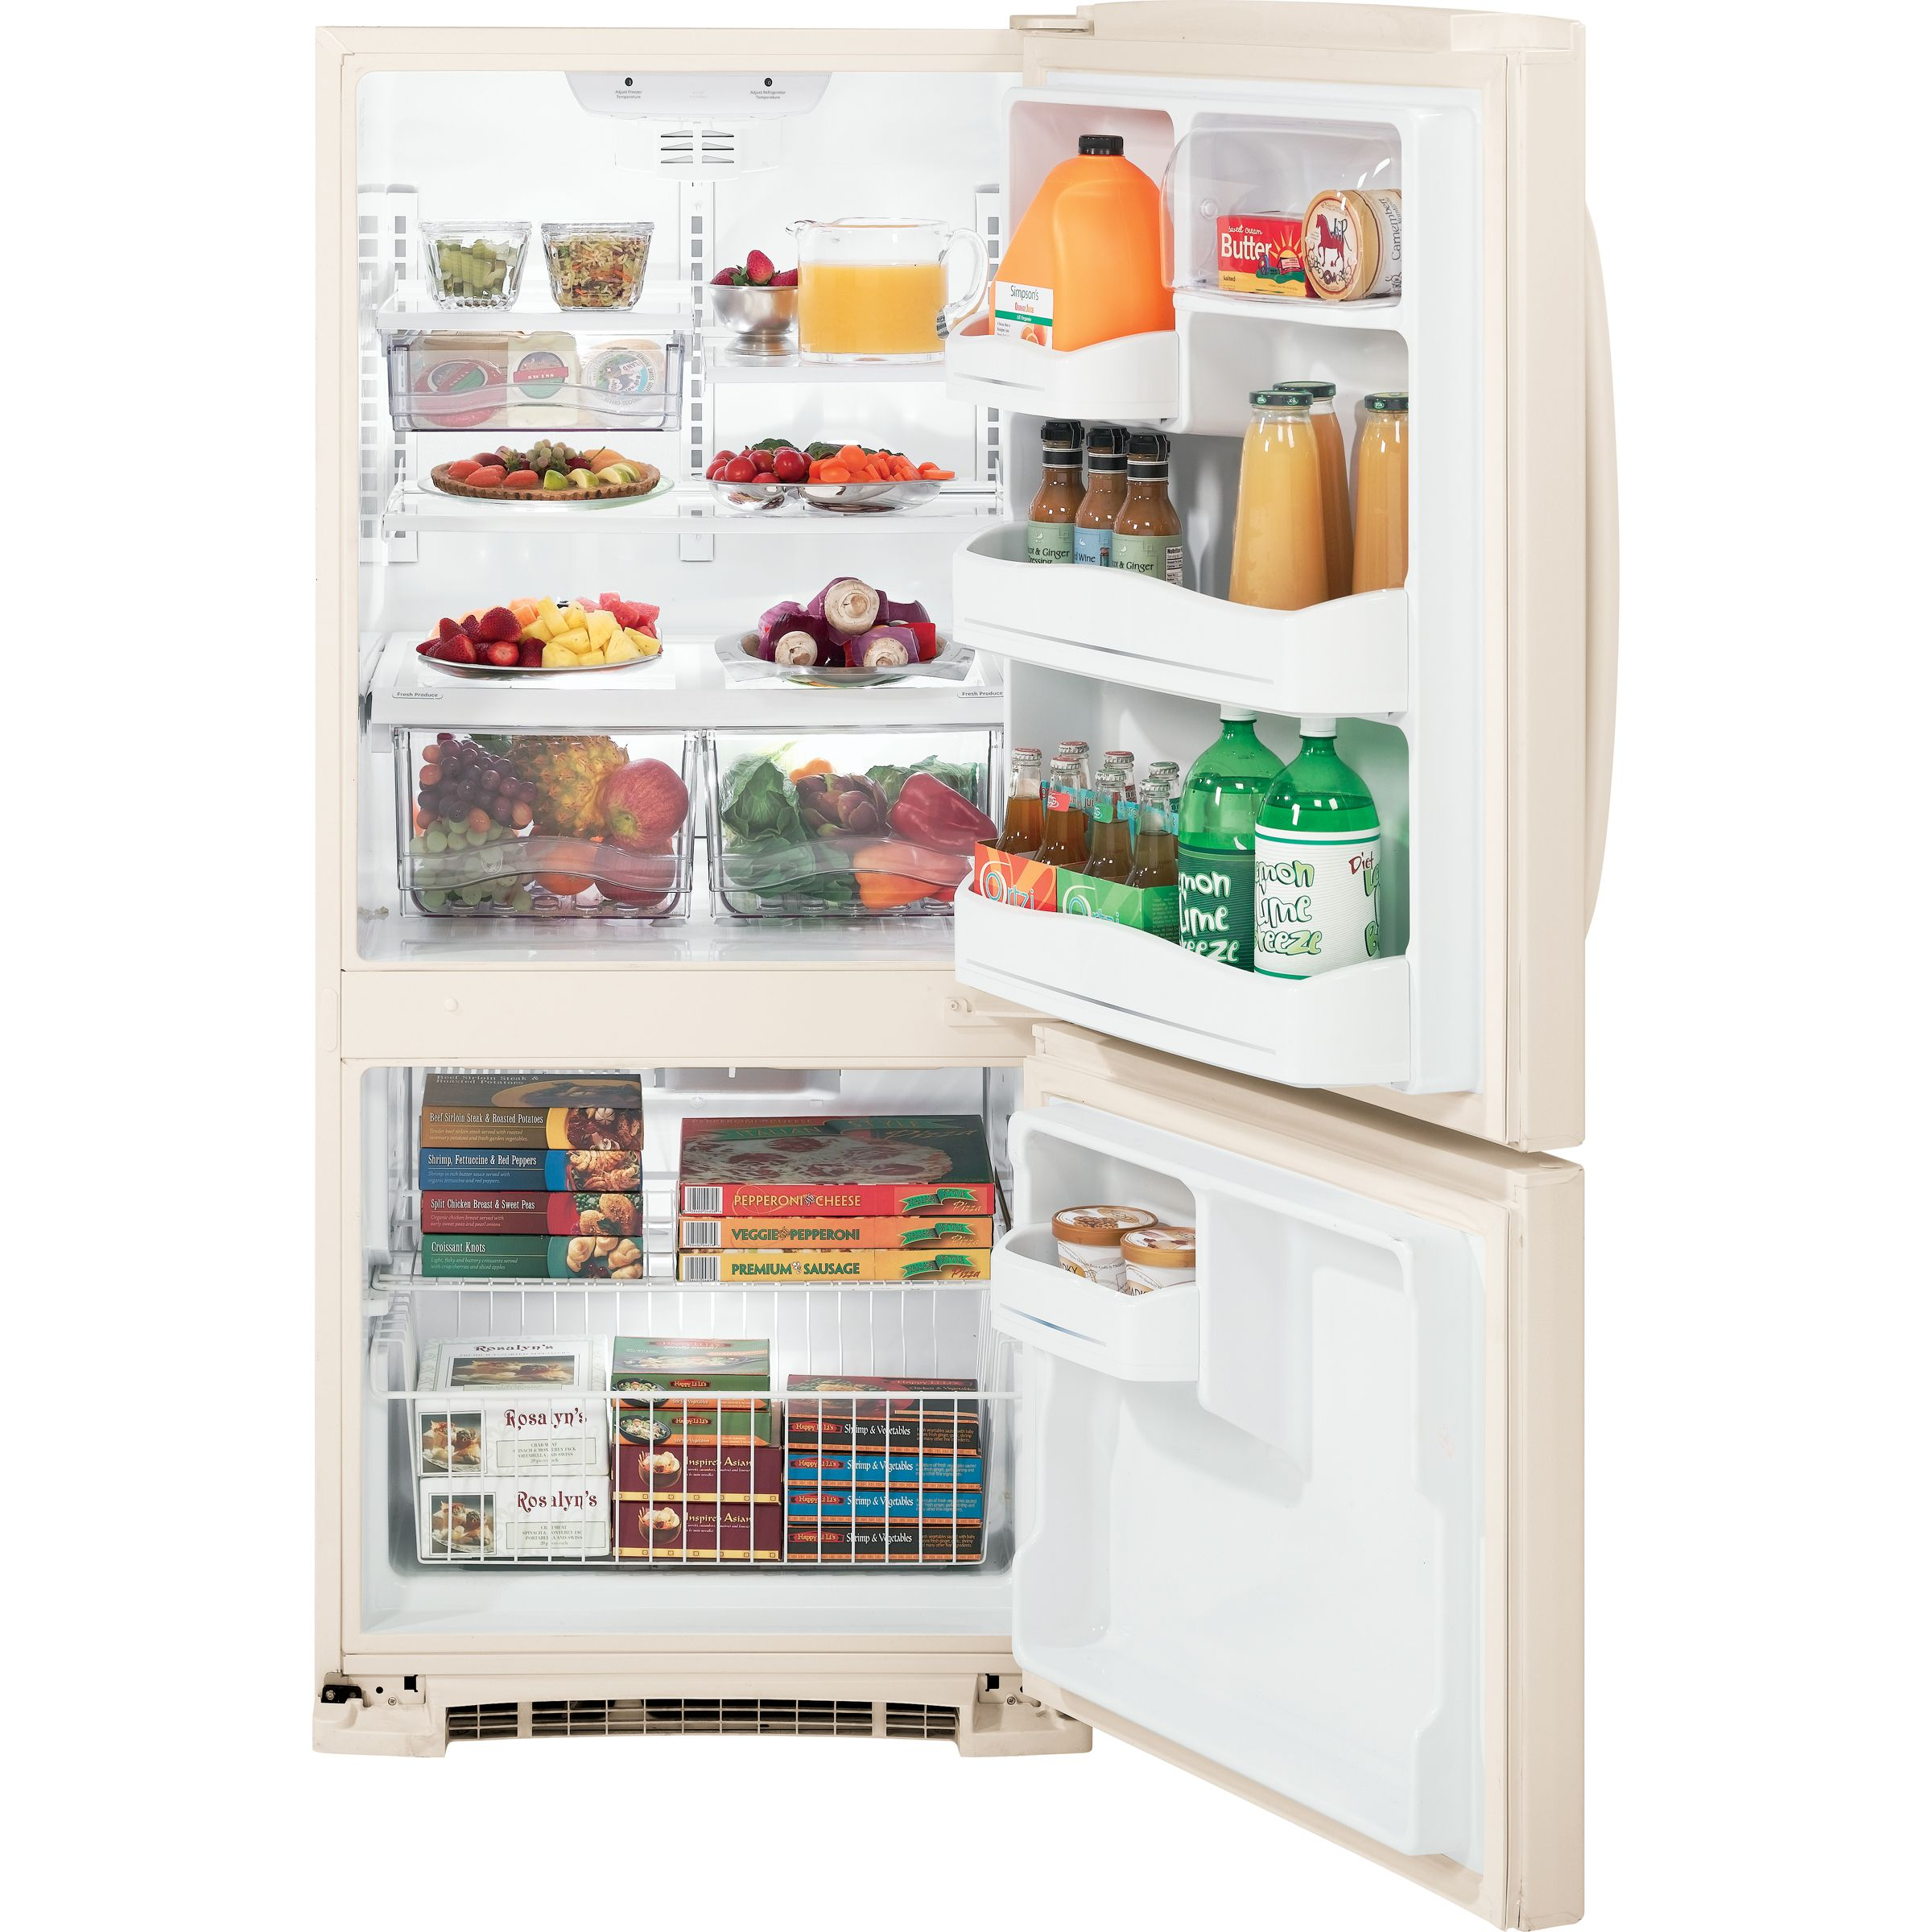 GE 20.3 cu. ft. Bottom Freezer Refrigerator (GBSC0HBX)